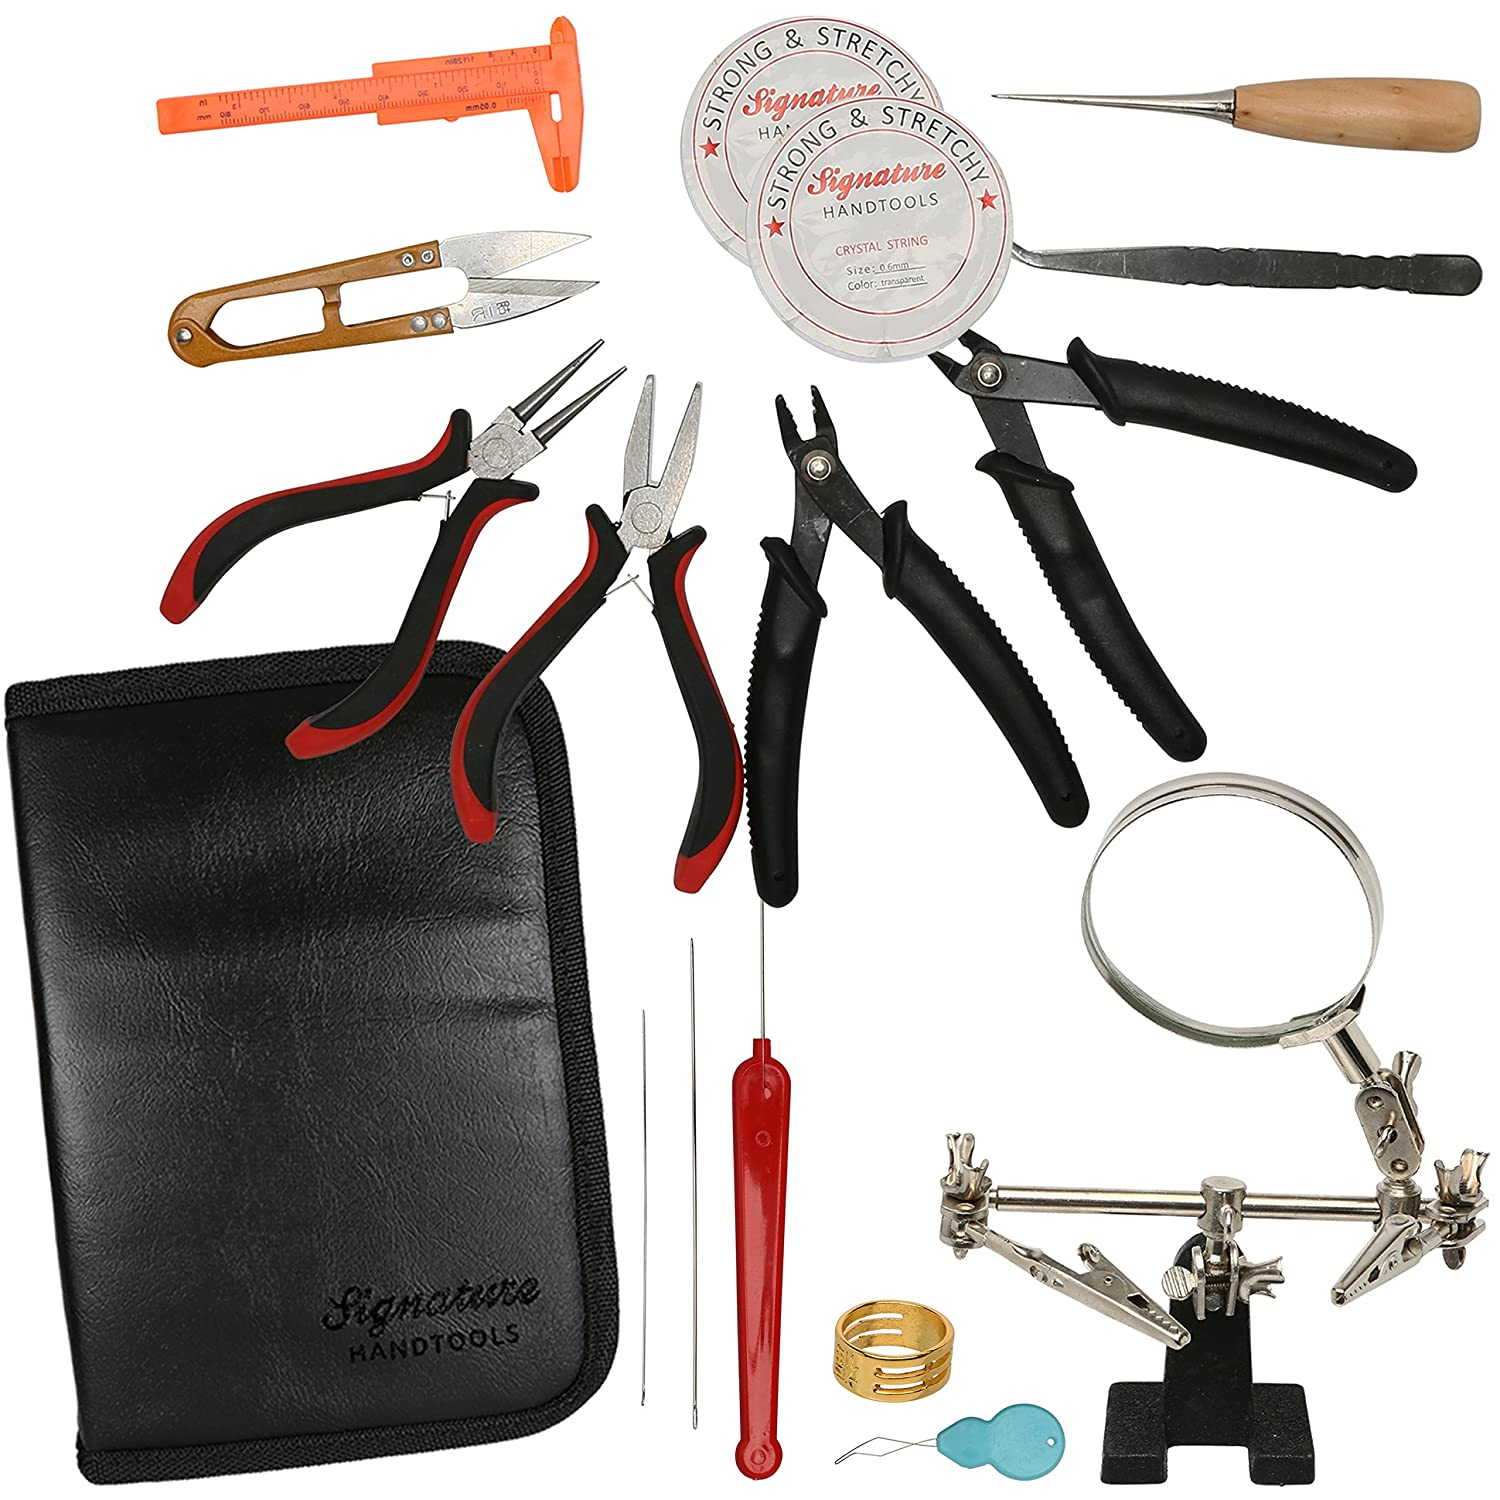 Deluxe 16pc Jewelry Making Supplies Kit - Jewelry Pliers, Magnifier Stand & Bead Crimper Great for Beading, Wire Wrapping, This Crafting Kit Does it All in a Professional Storage Case Signature HANDTOOLS 4336836334